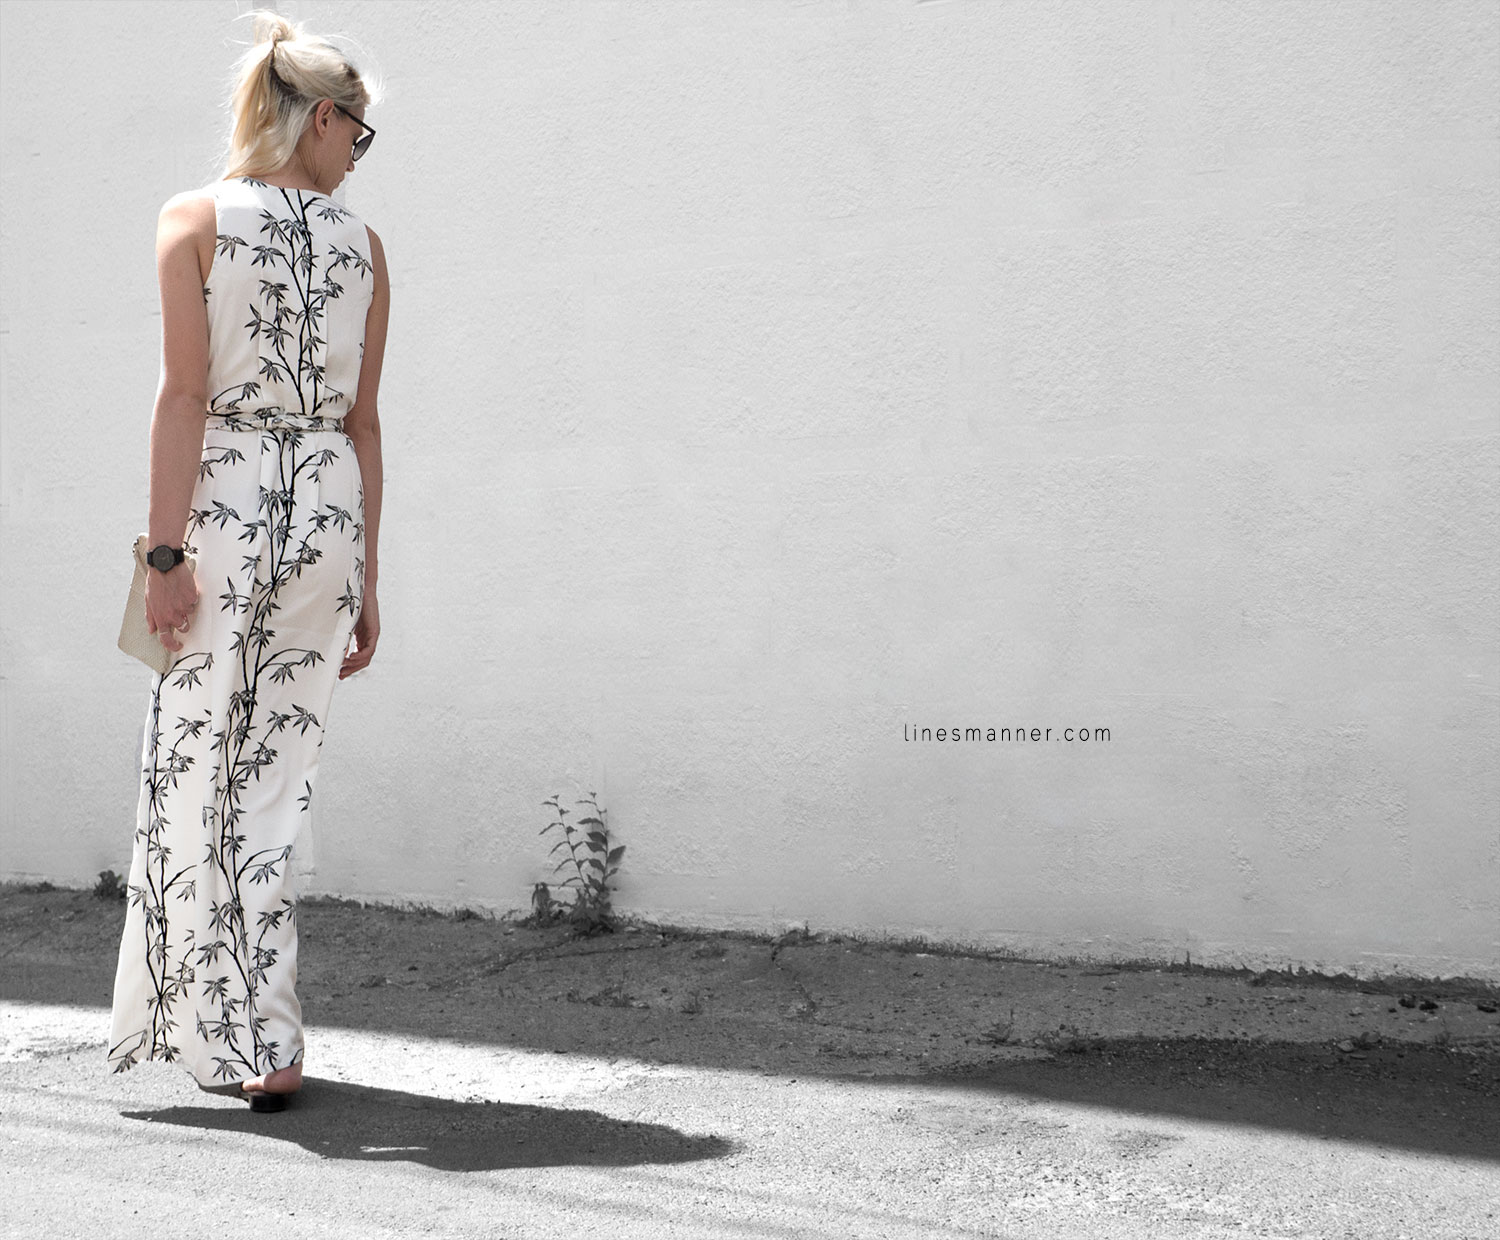 Lines-Manner-Minimal-Simplicity-Essentials-Bon_Label-Neon_Rose_Print-Bamboo-Slit_Dress-Wrap_Dress-Maxi_Dress-Fesh-Black_and_White-Casual-Elegant-Bright-Monochrome-16